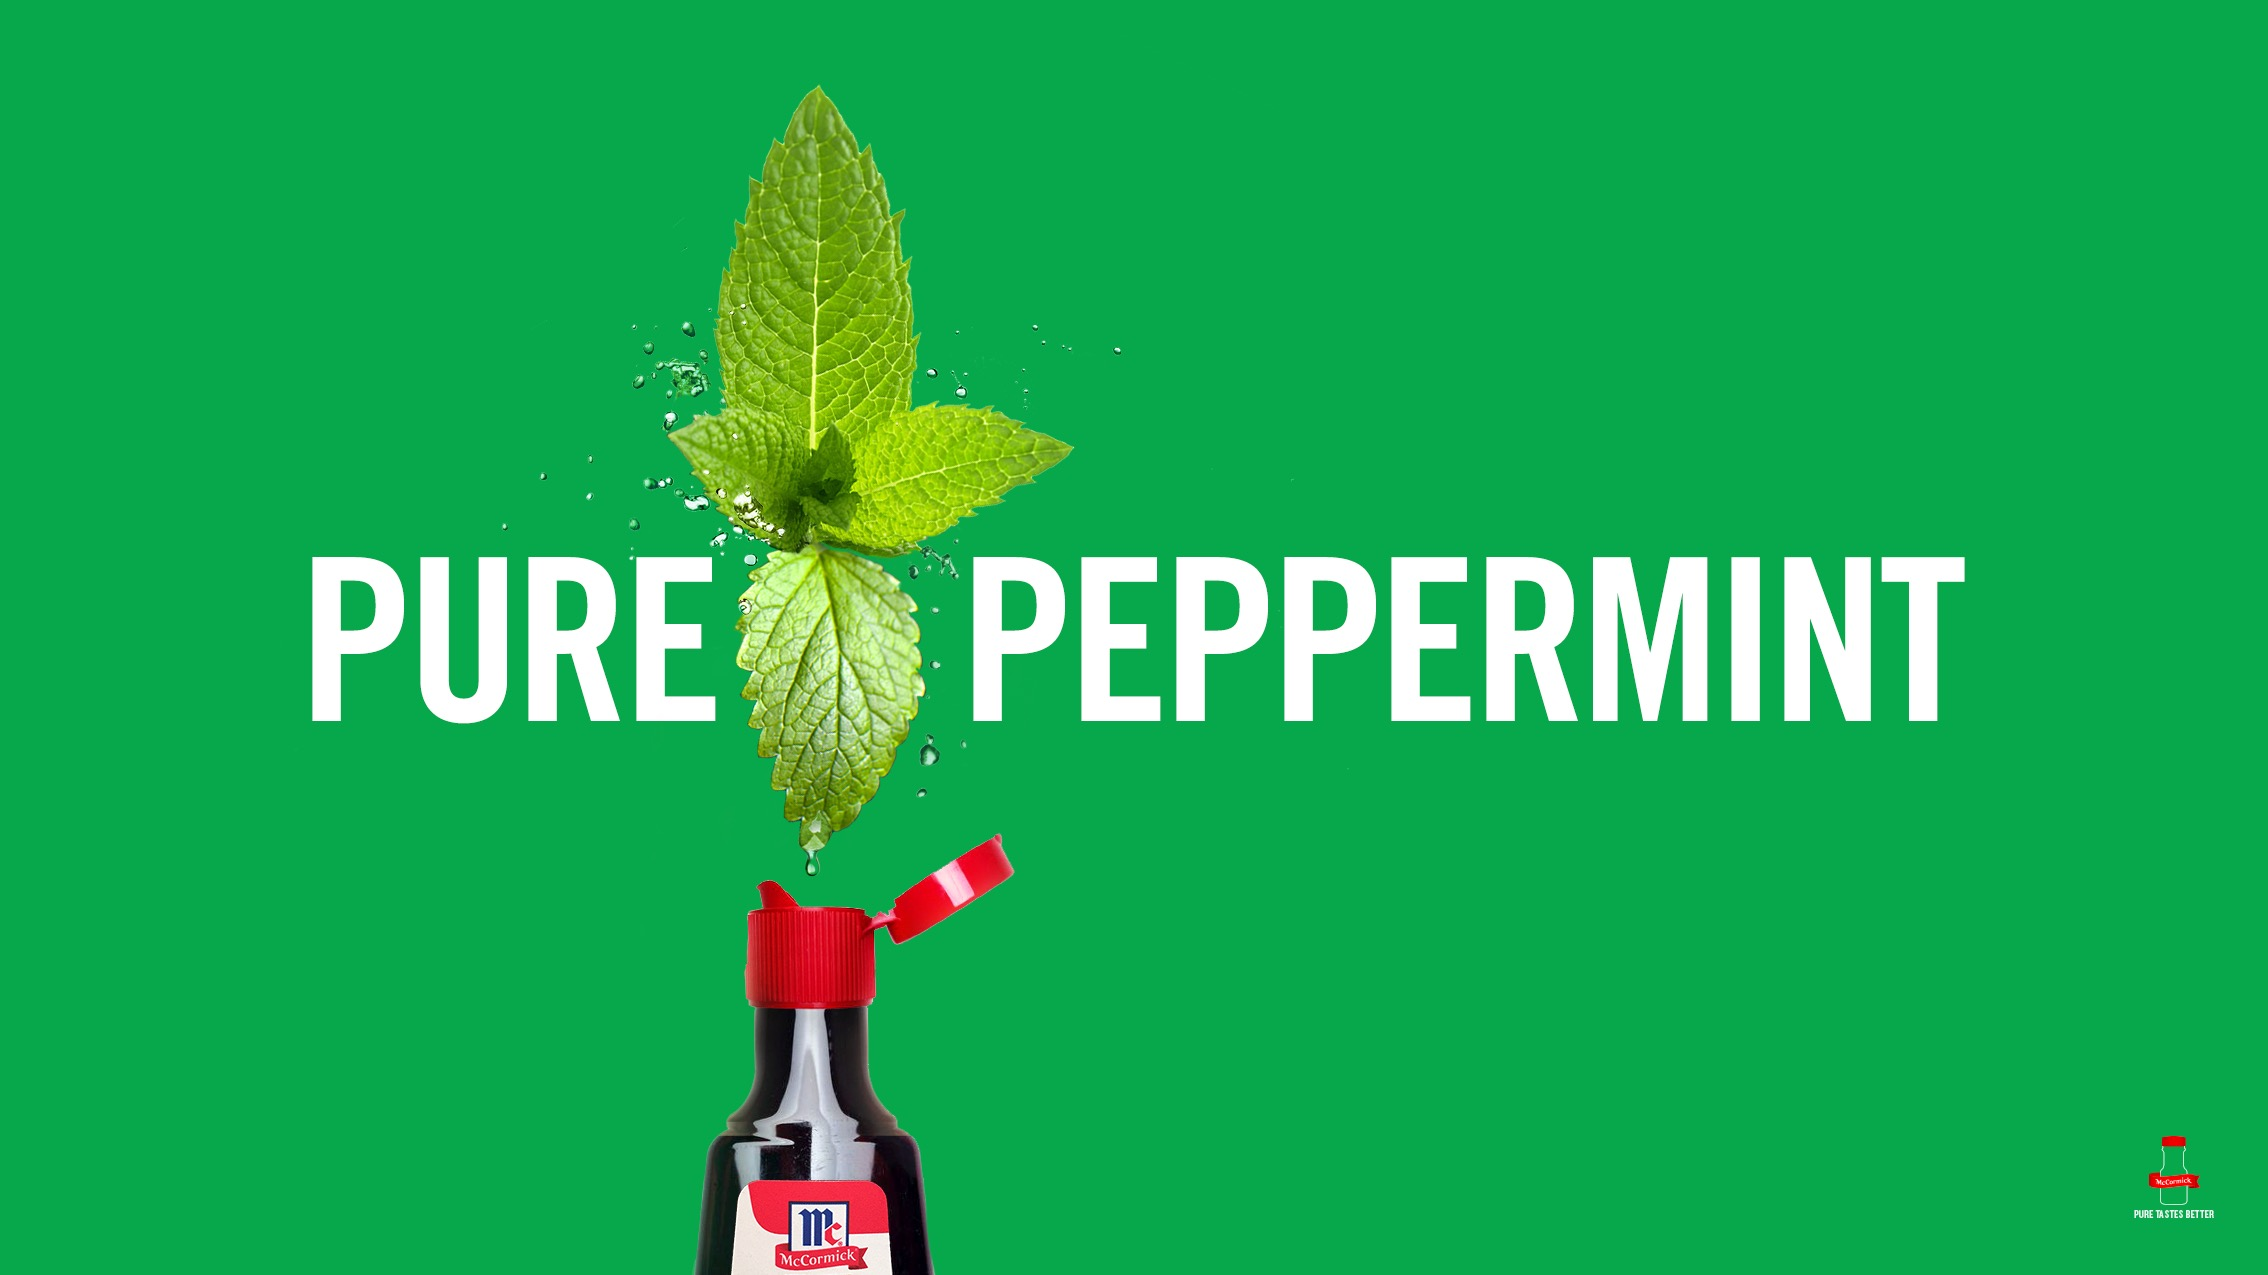 PureIngredients_1009_PeppermintExtract.jpeg